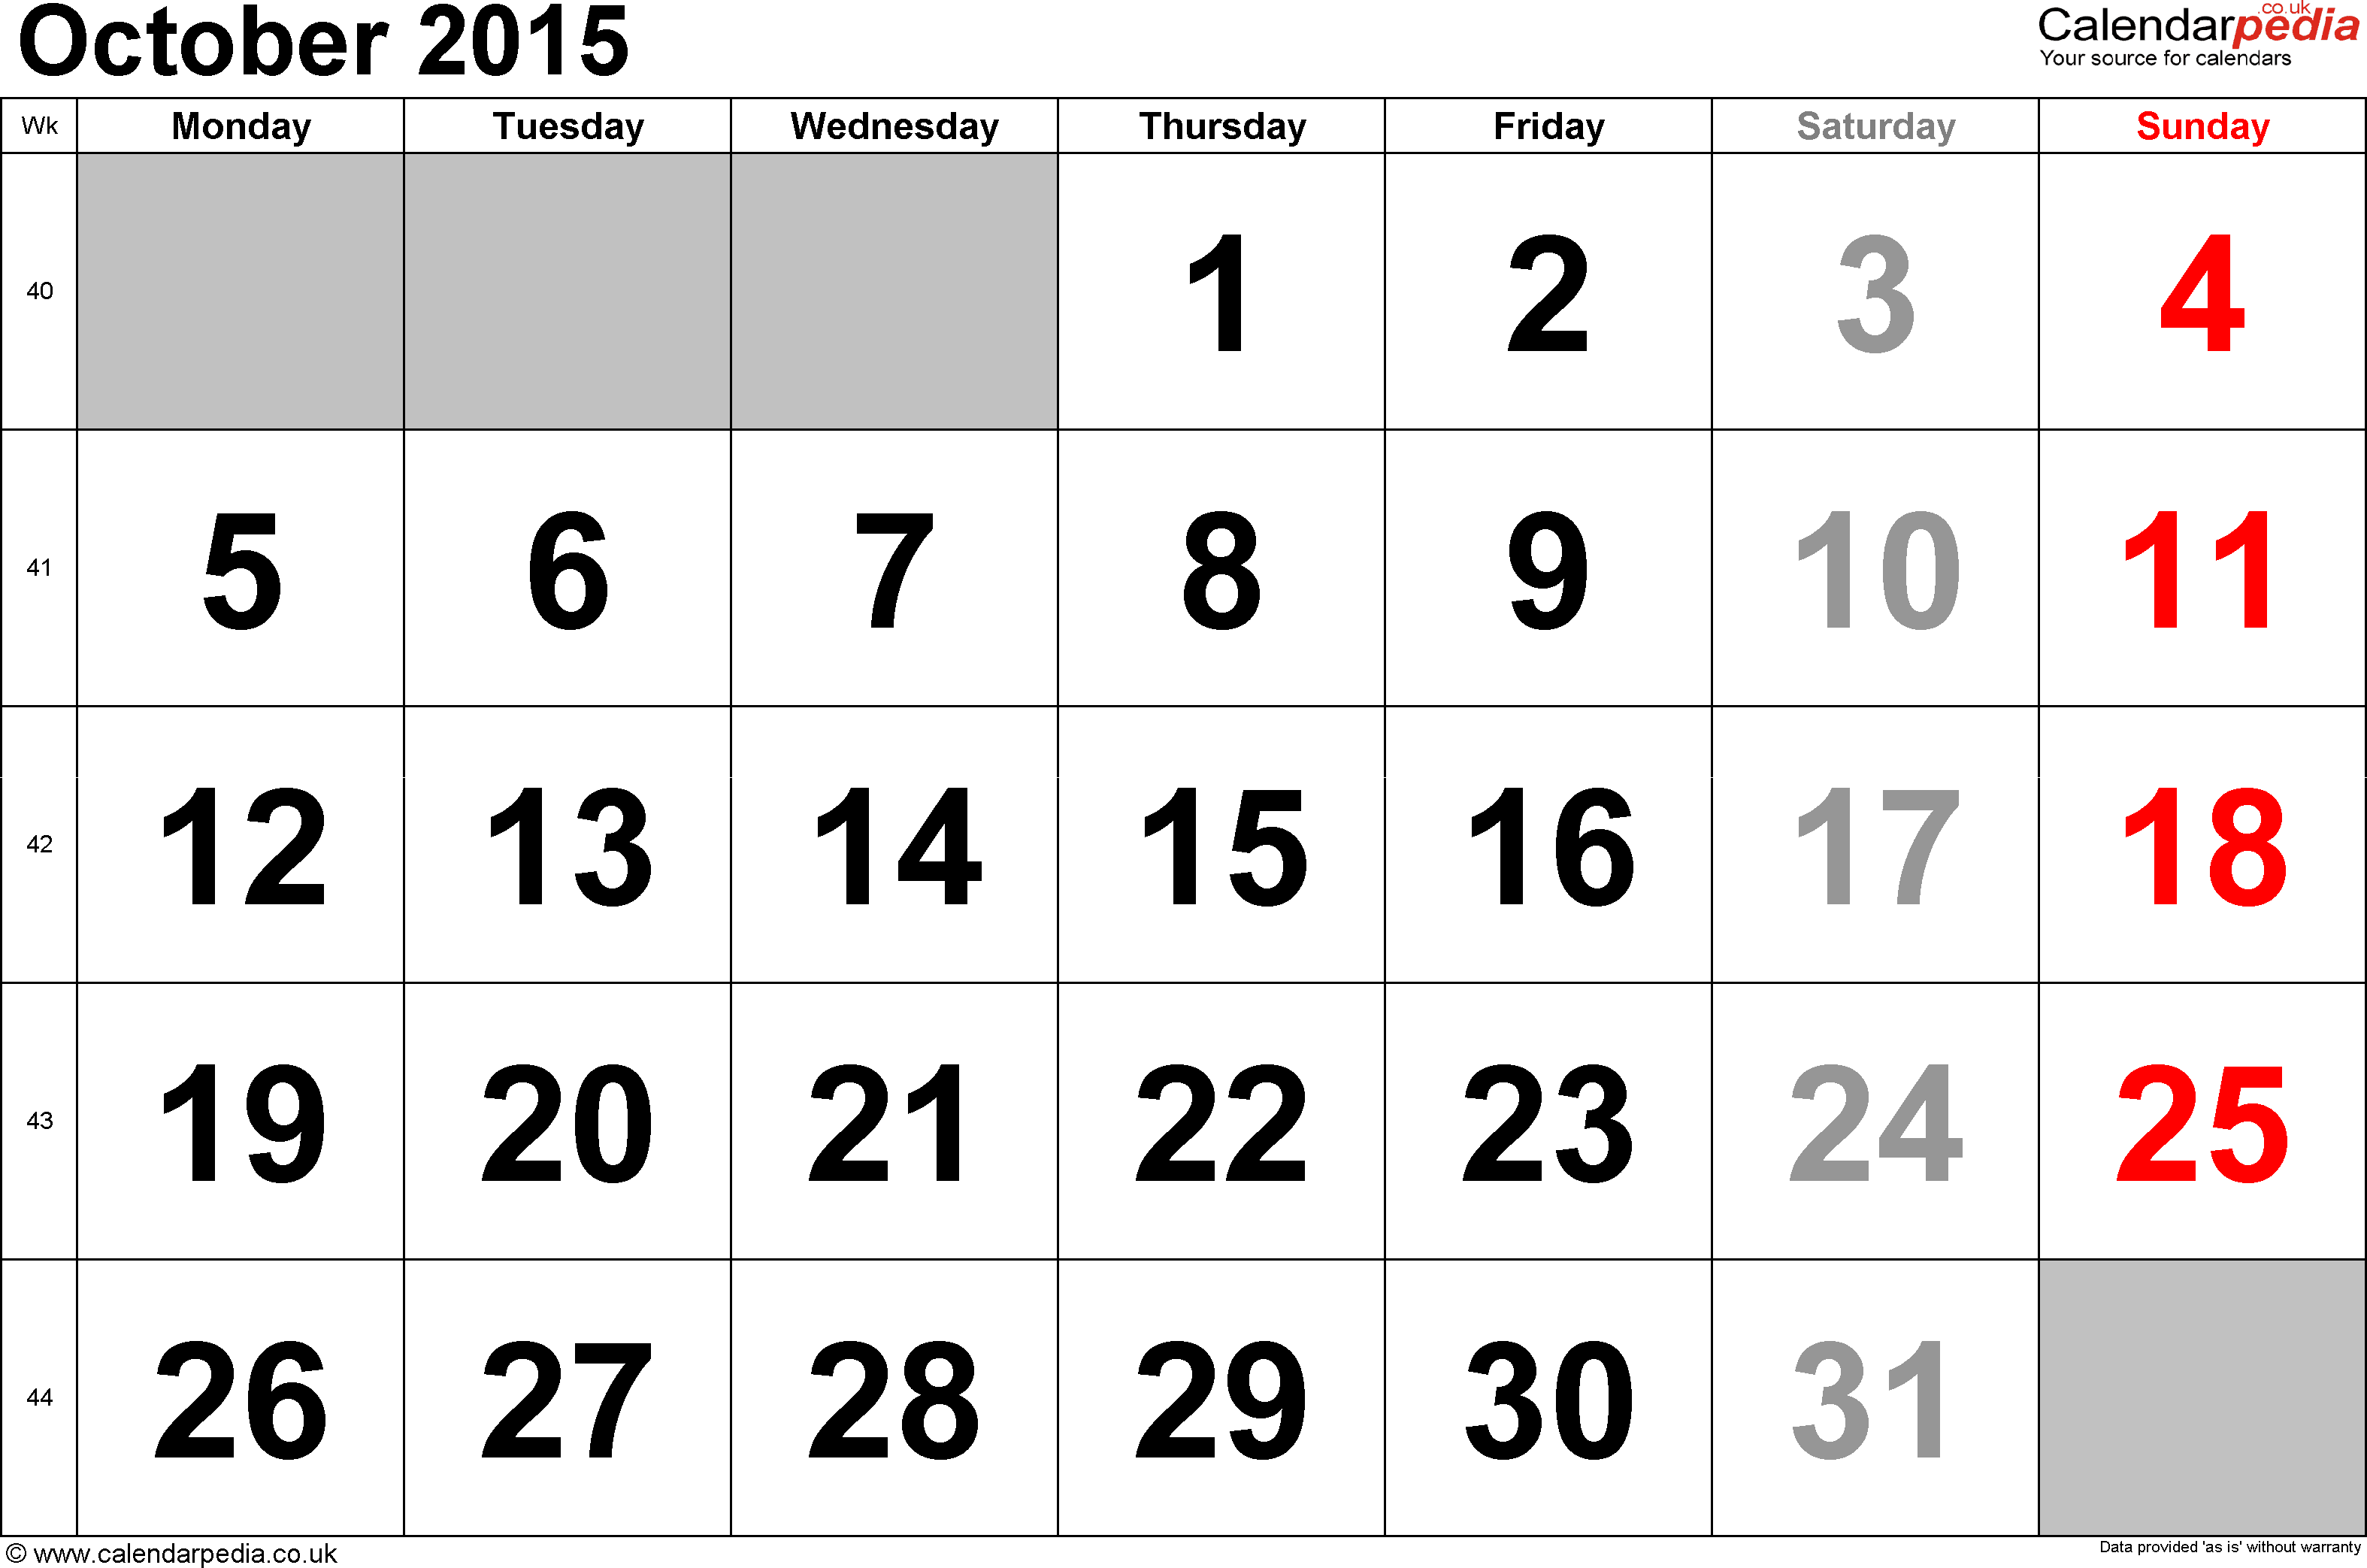 Calendar October 2015, landscape orientation, large numerals, 1 page, with UK bank holidays and week numbers